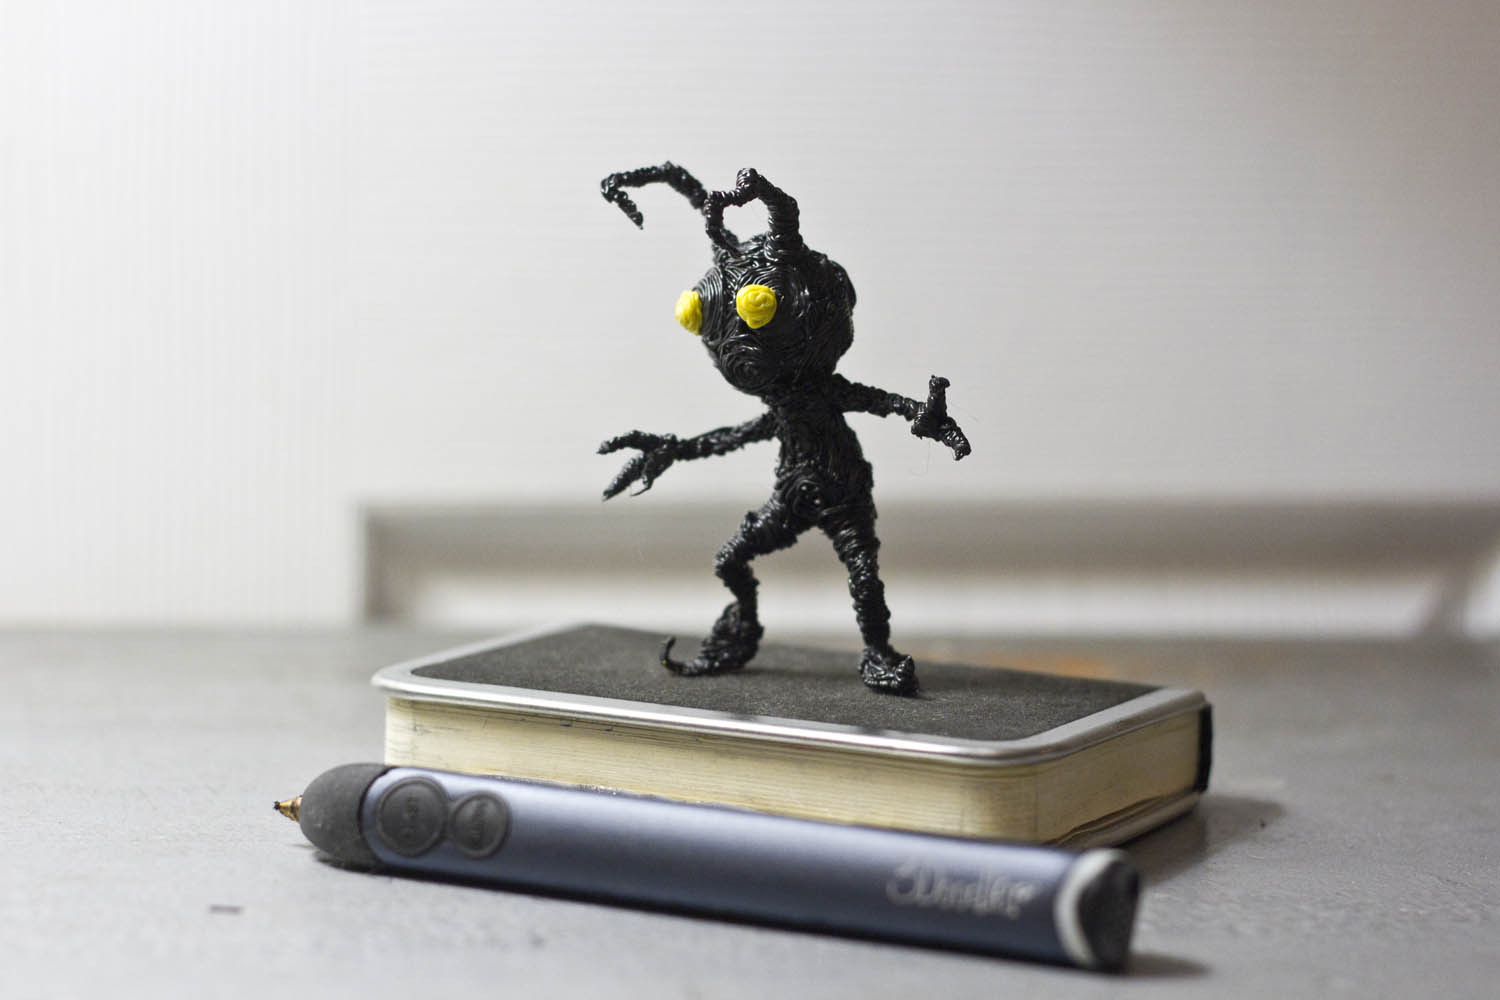 Kingdom Hearts Shadow sculpted with a 3doodler pen by Ricardo Martinez Herrera | Riikc